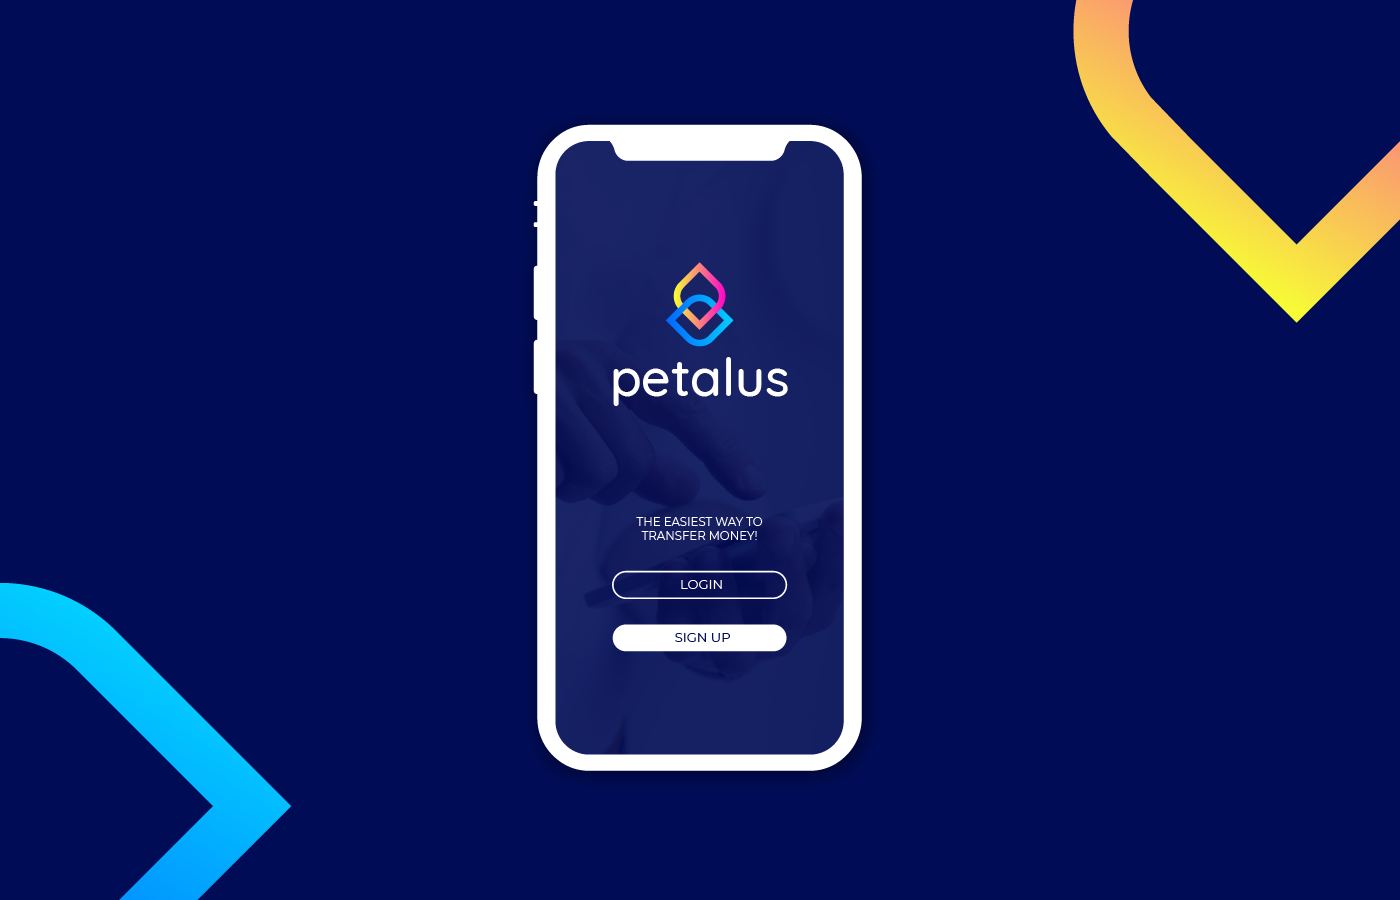 petalus-mobile-app-login